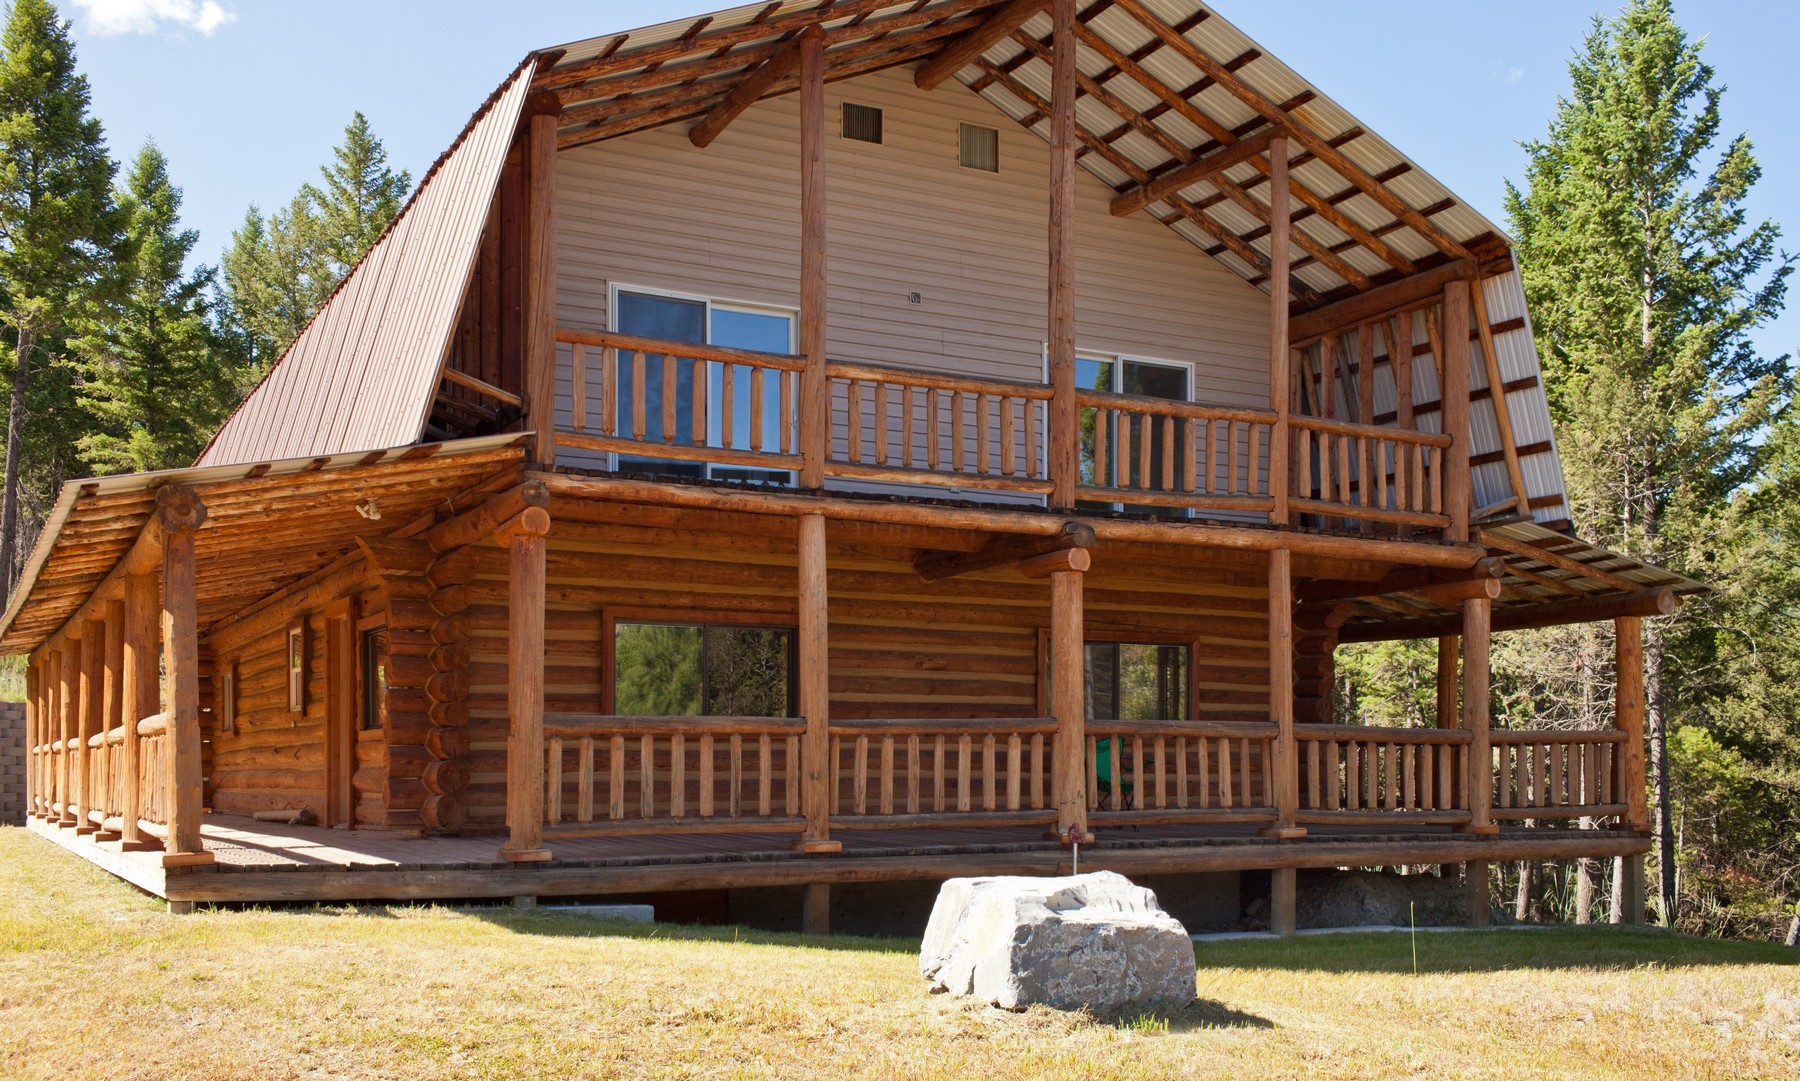 Single Family Home for Sale at 1390 Coon Hollow Rd , Kila, MT 59920 1390 Coon Hollow Rd Kila, Montana, 59920 United States